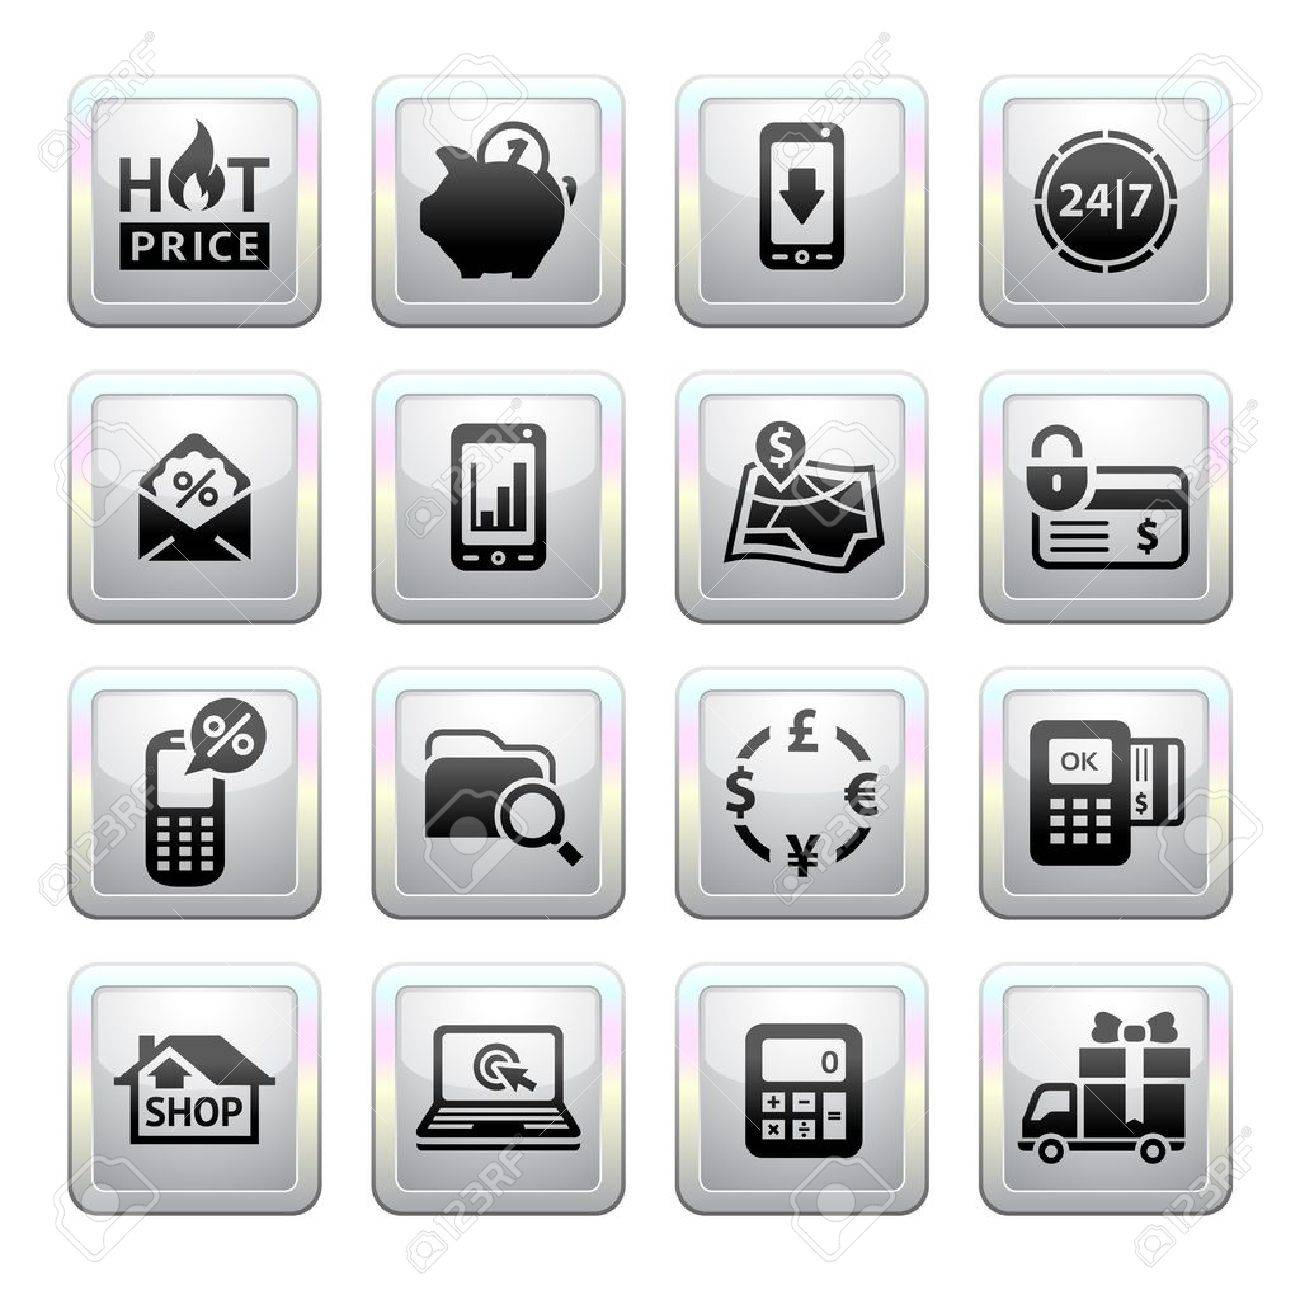 Shopping icons gray web 2 0 icons royalty free cliparts vectors shopping icons gray web 2 0 icons stock vector 19155905 sciox Gallery